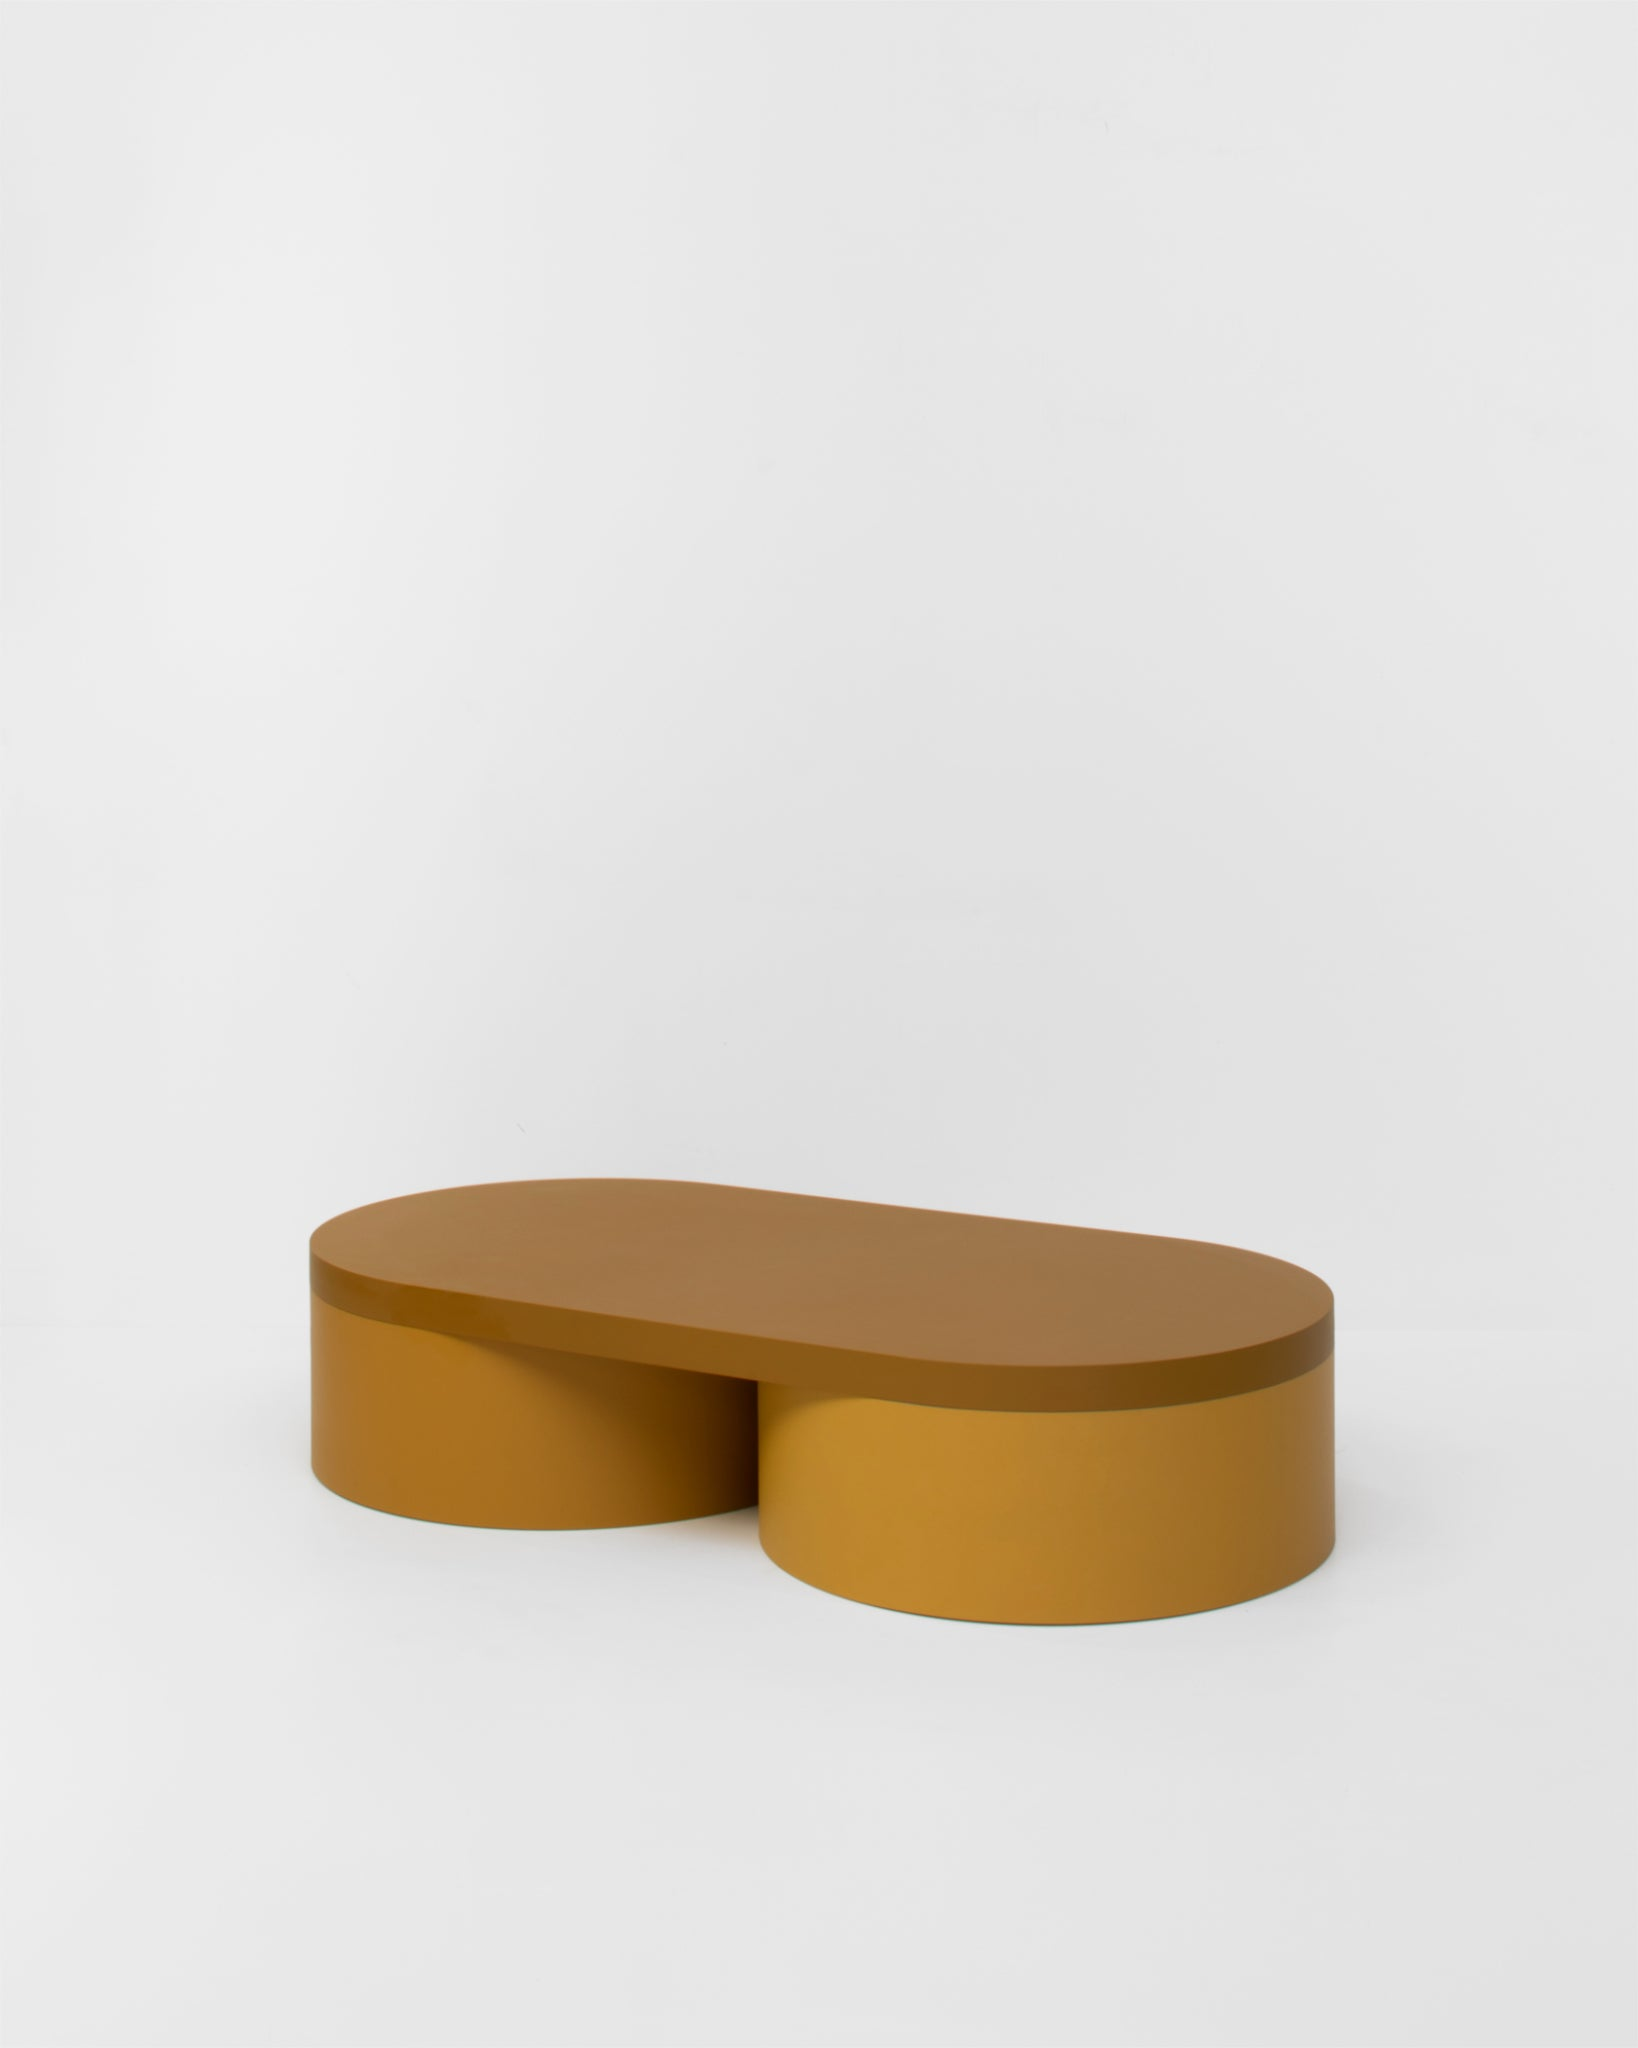 Colorful low table contemporary design lacquered wood ocher